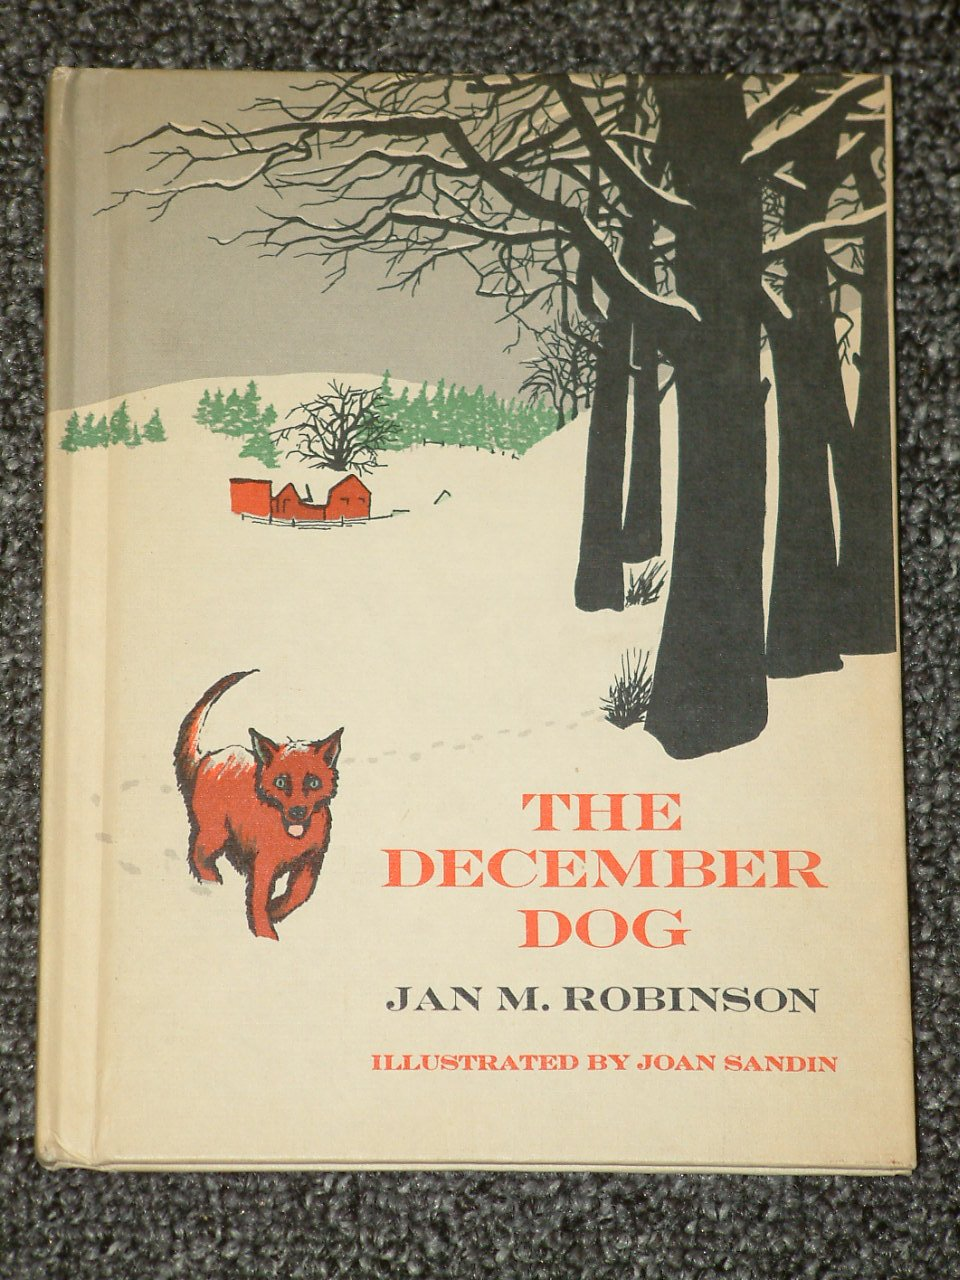 The December Dog by Jan M. Robinson 1969